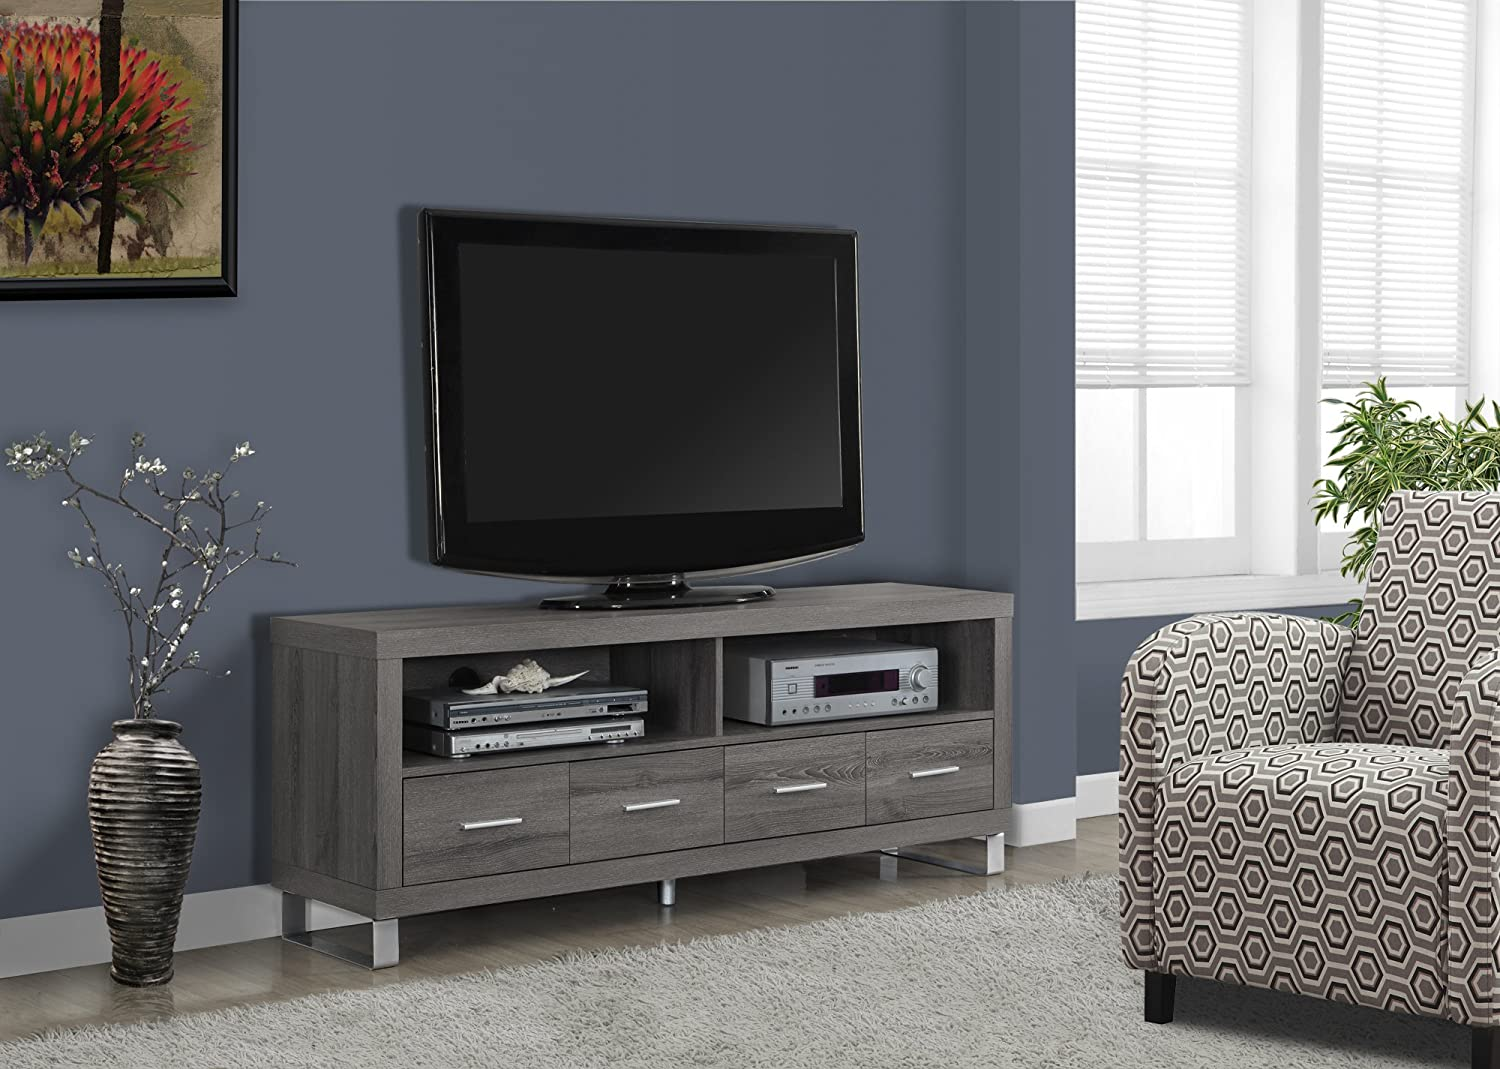 Amazon.com: Monarch Specialties I 2517, TV Console with 4 Drawers ...